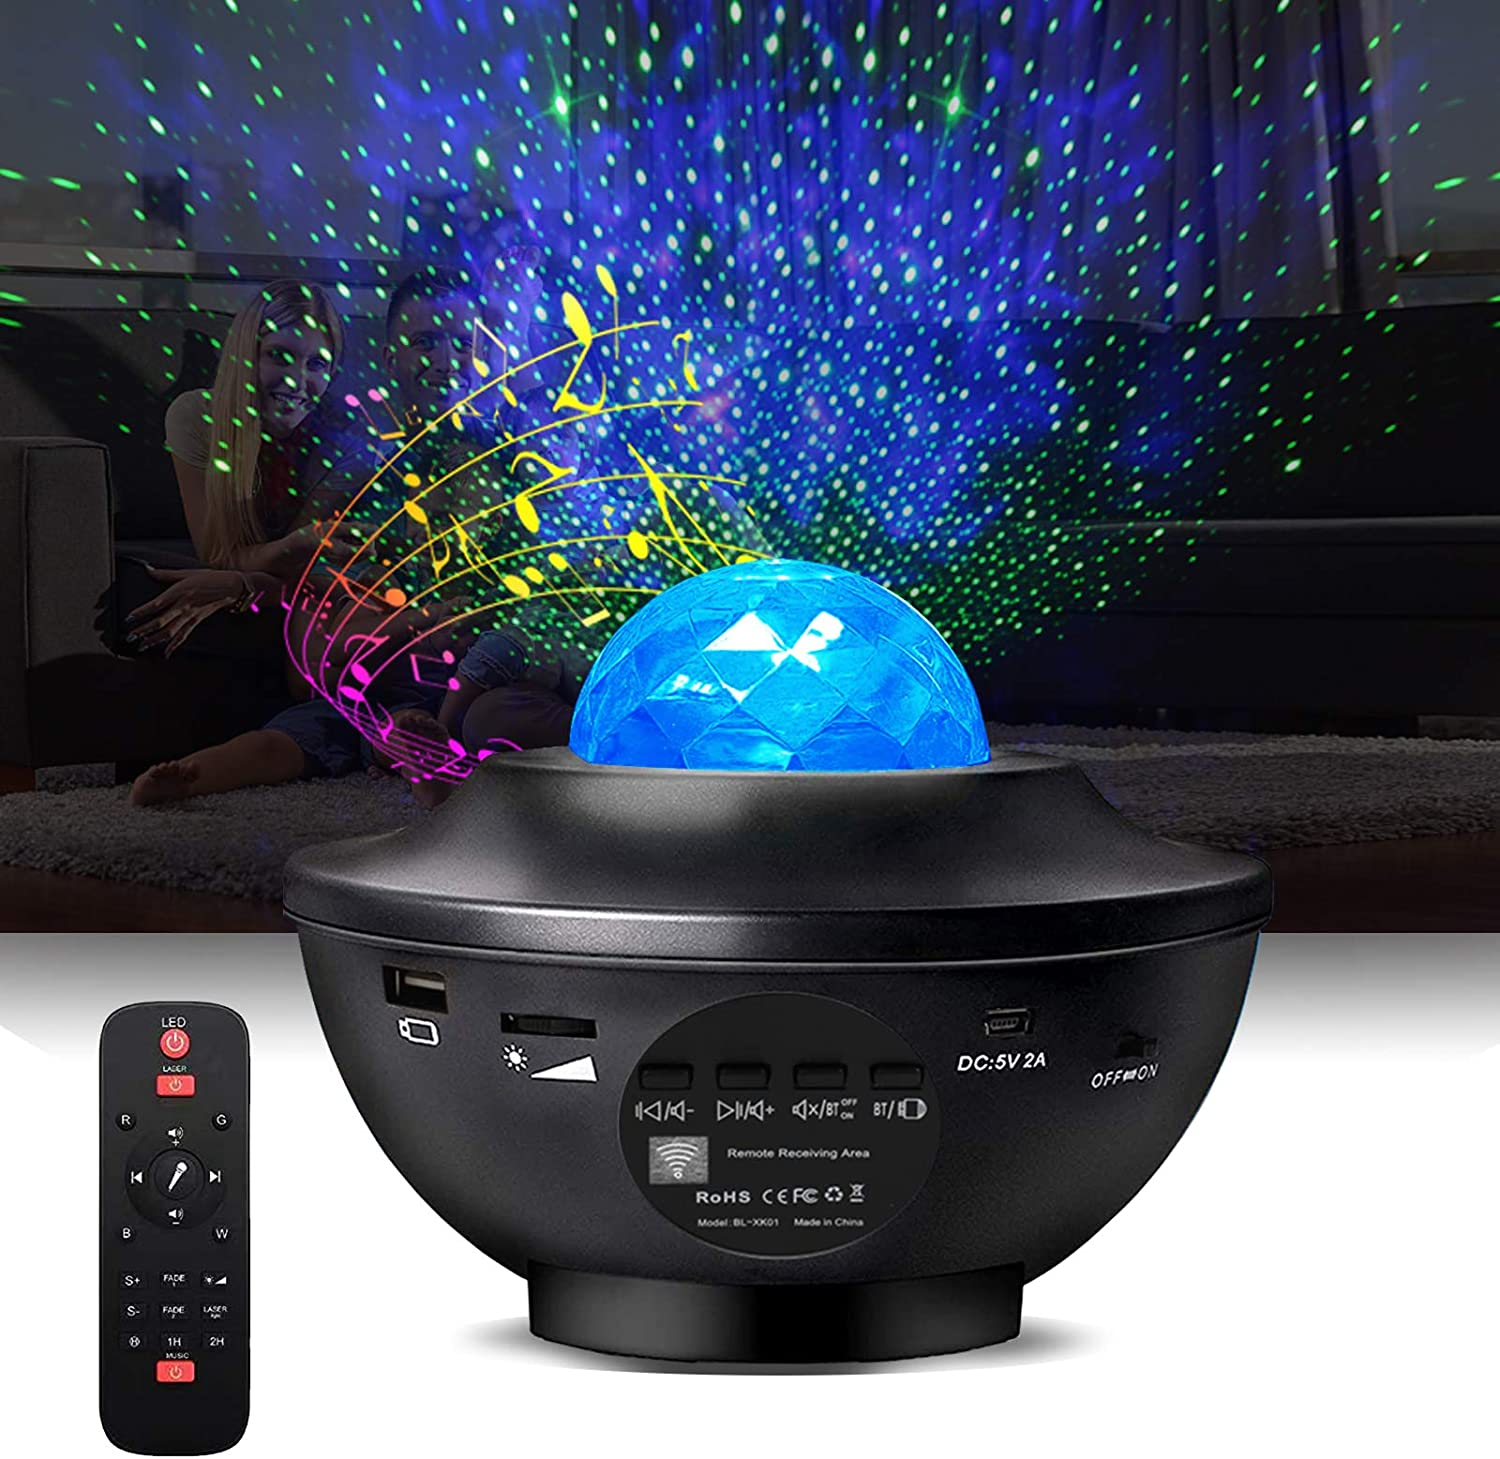 Night Light Projector 3 in wit Indianapolis Mall Star Fashion Galaxy 1